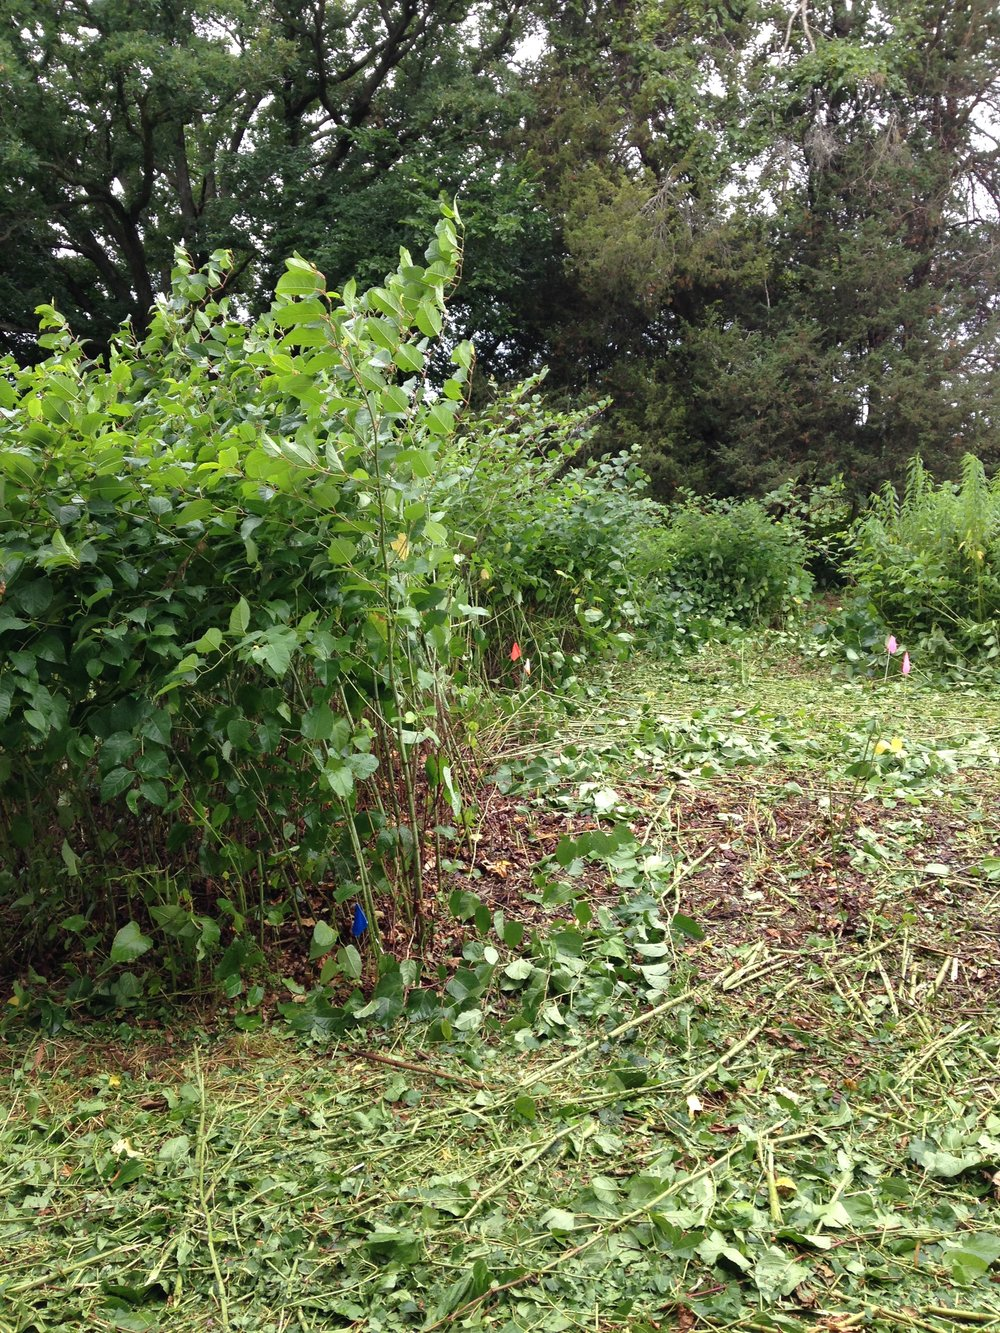 Alleys were mowed between herbicide treated plots to facilitate application.  Knotweed plants were about 7 feet tall at herbicide application.